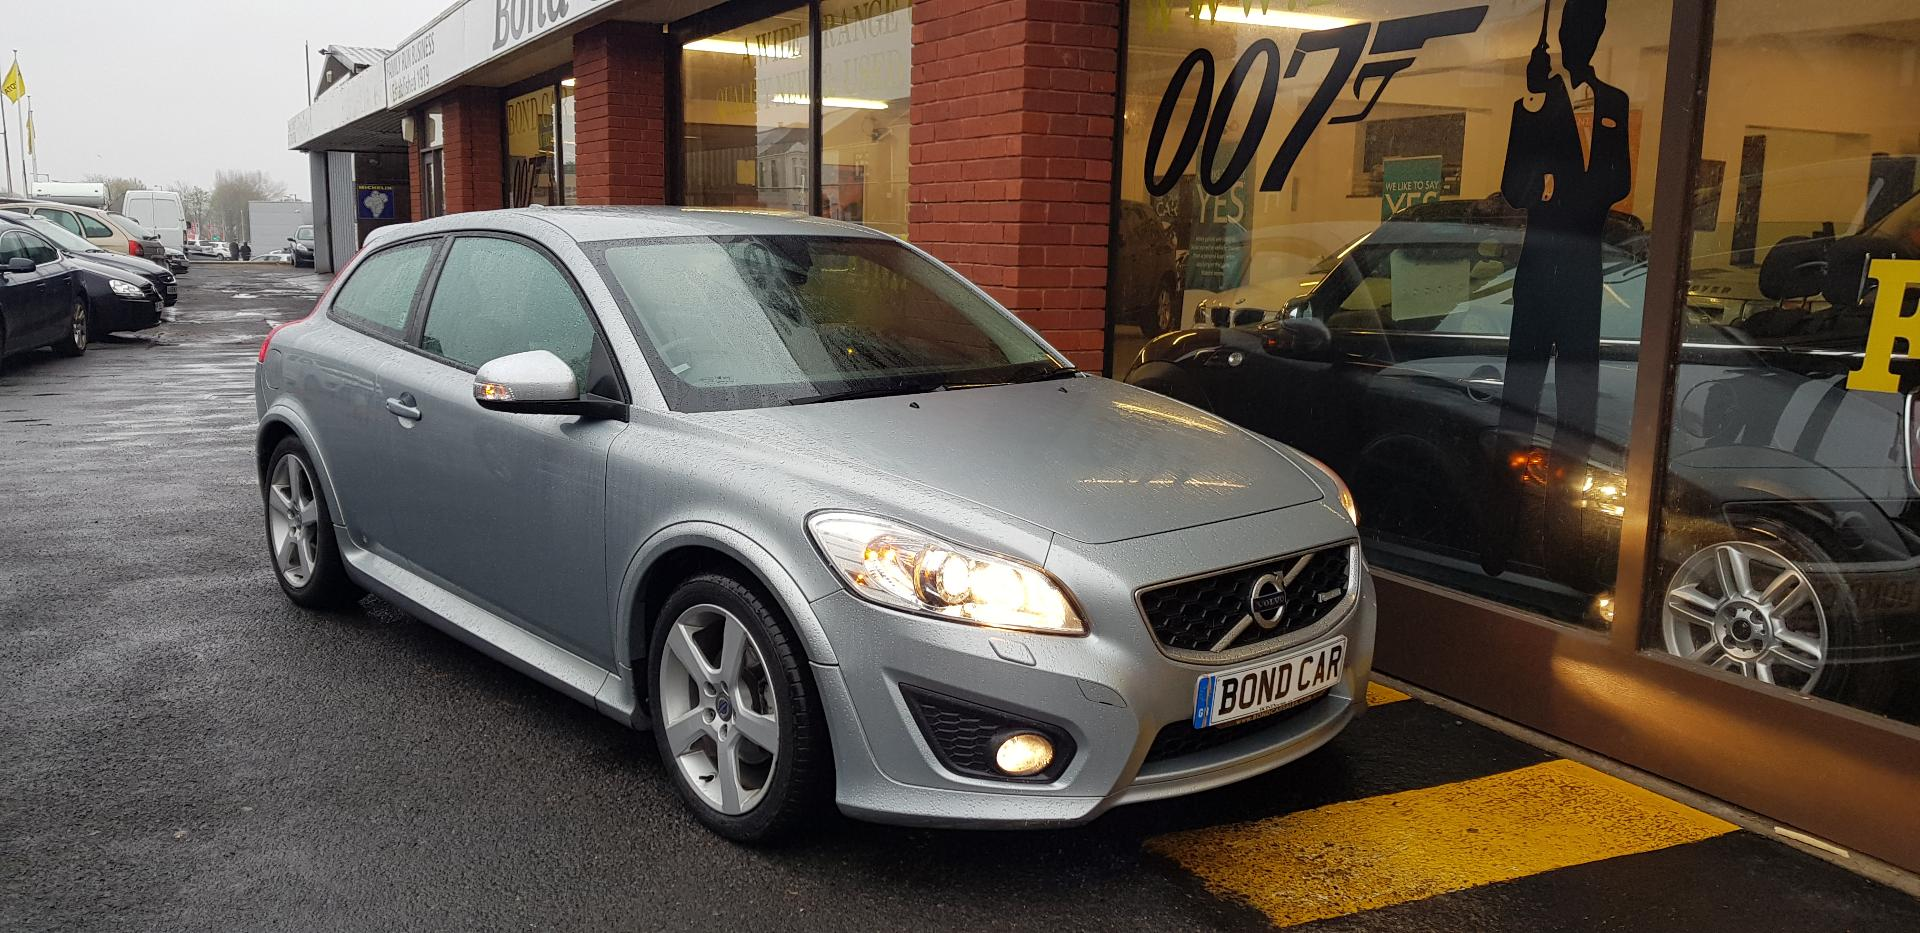 2010 (10) Volvo C30 2.0D R DESIGN For Sale In Swansea, Glamorgan